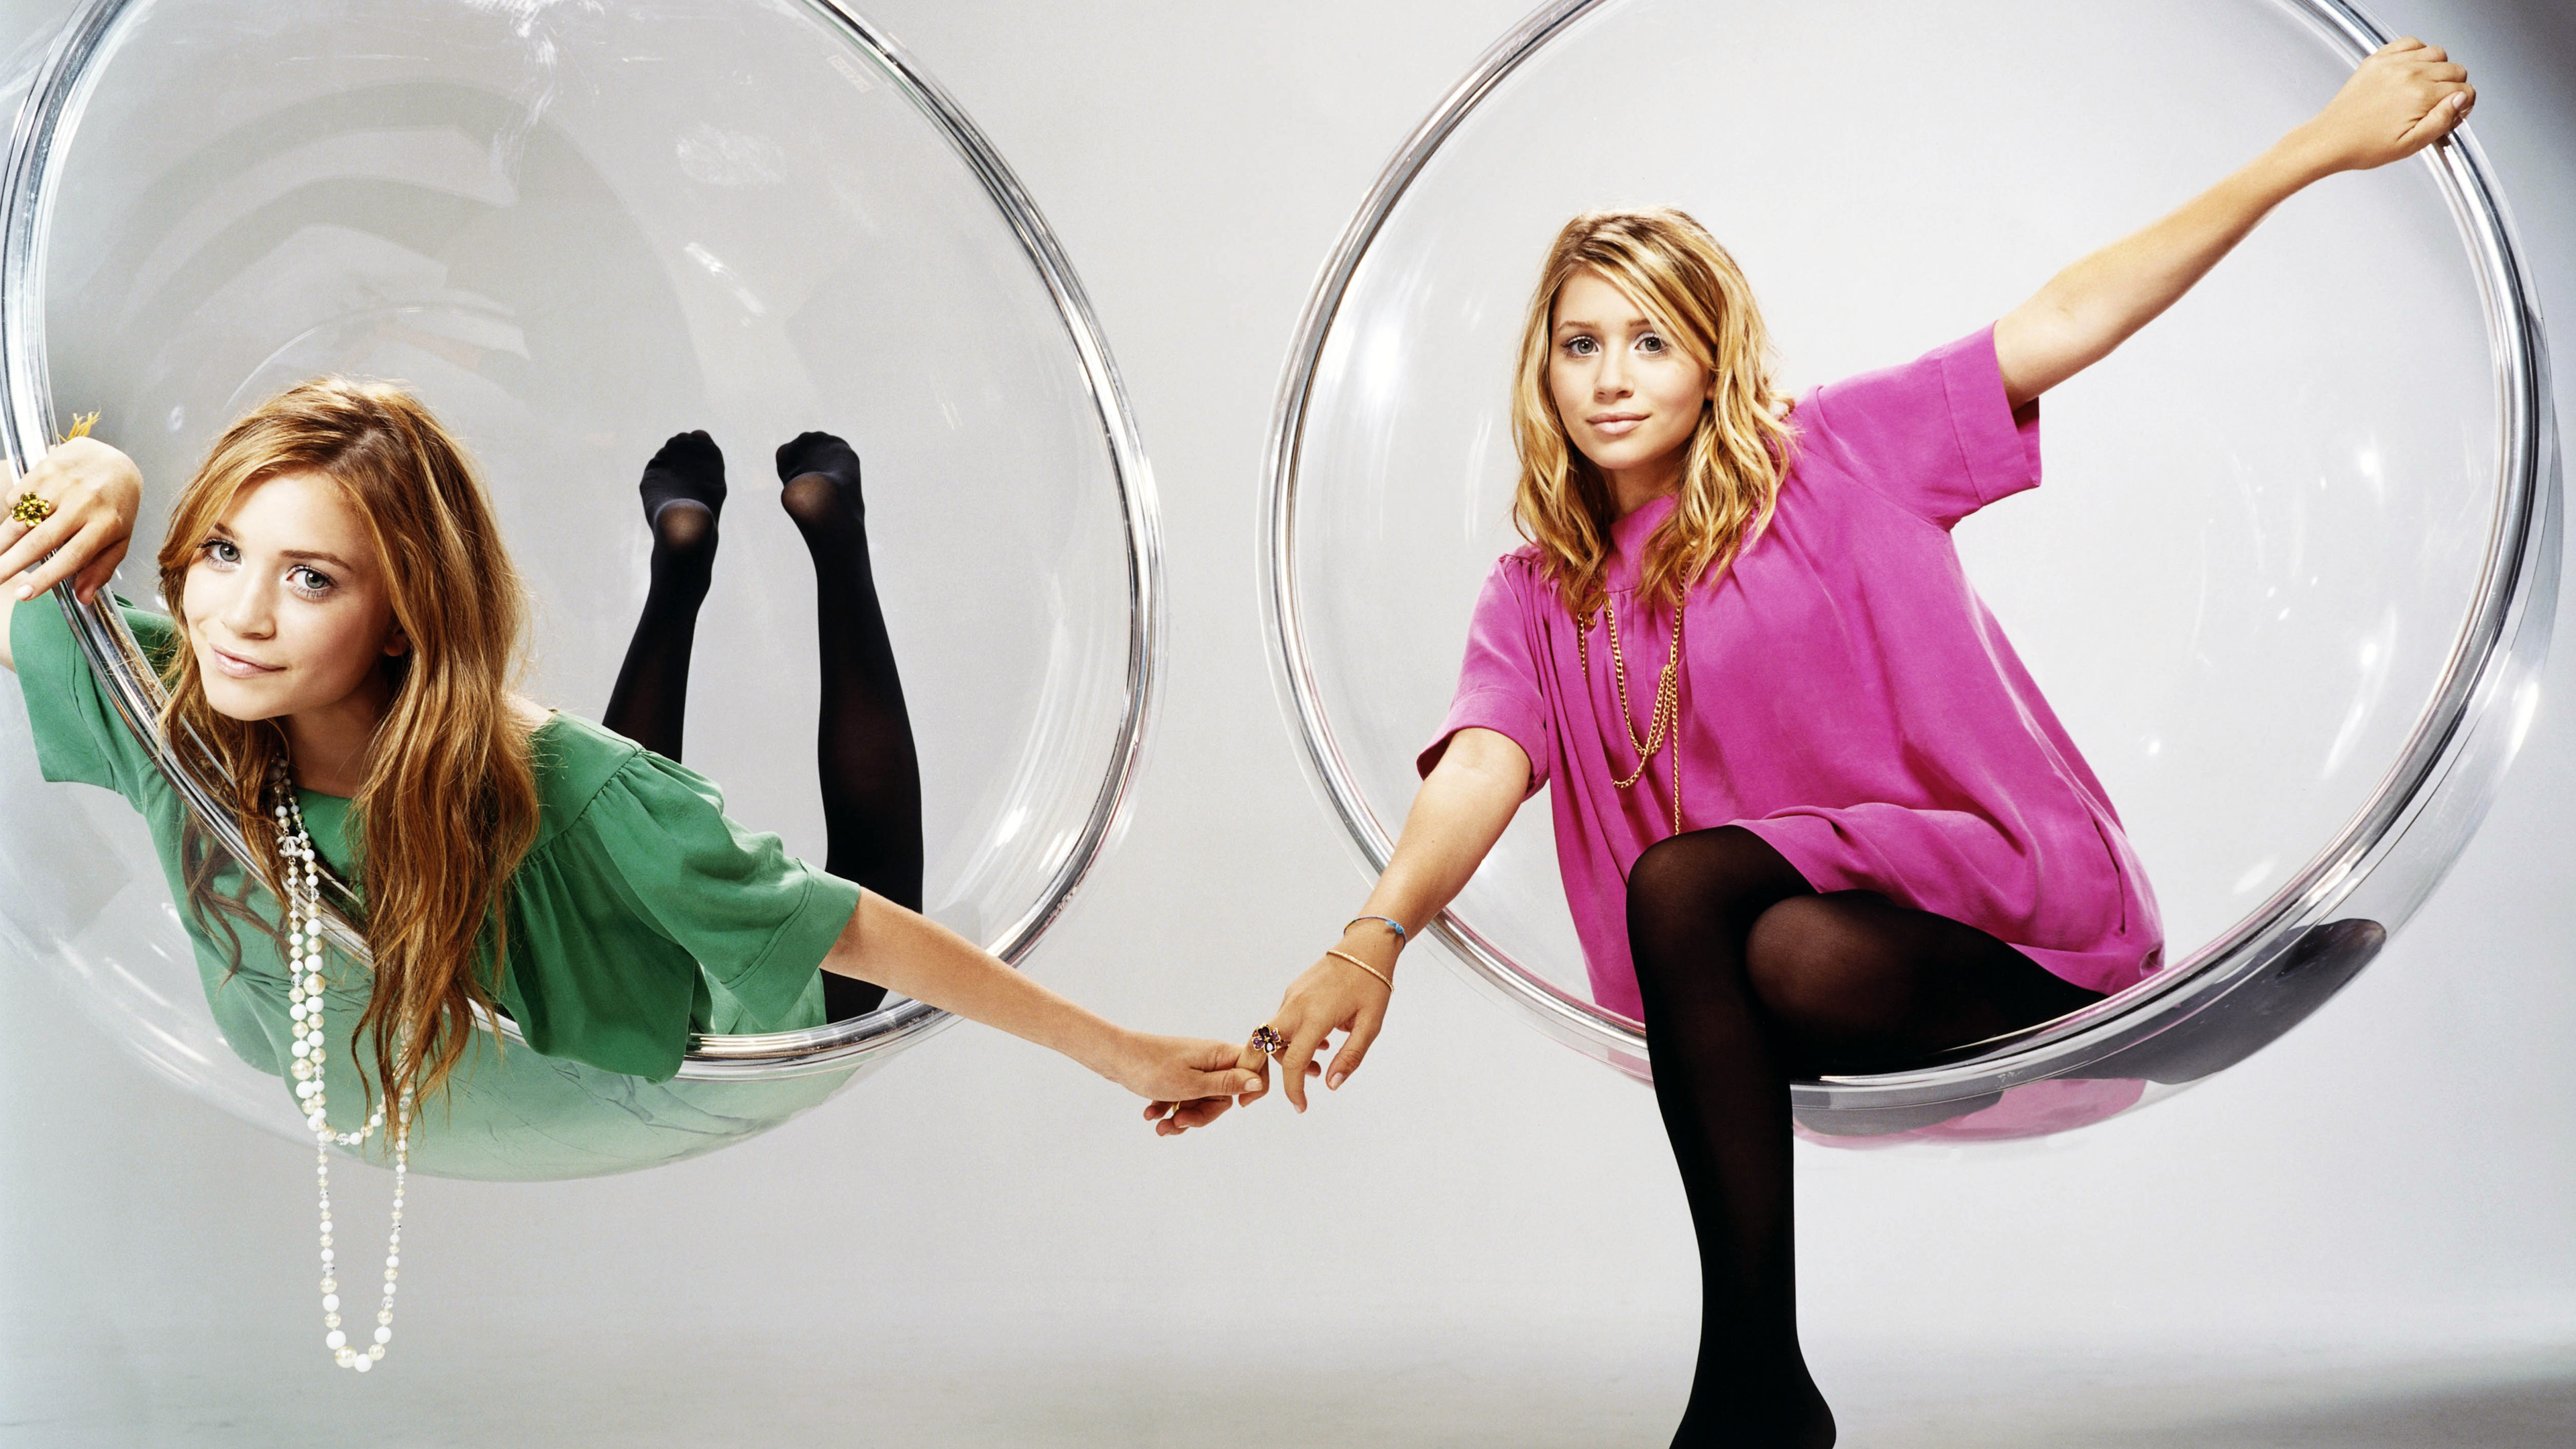 Olsen Twins Wallpapers HD Wallpapers 3840x2160